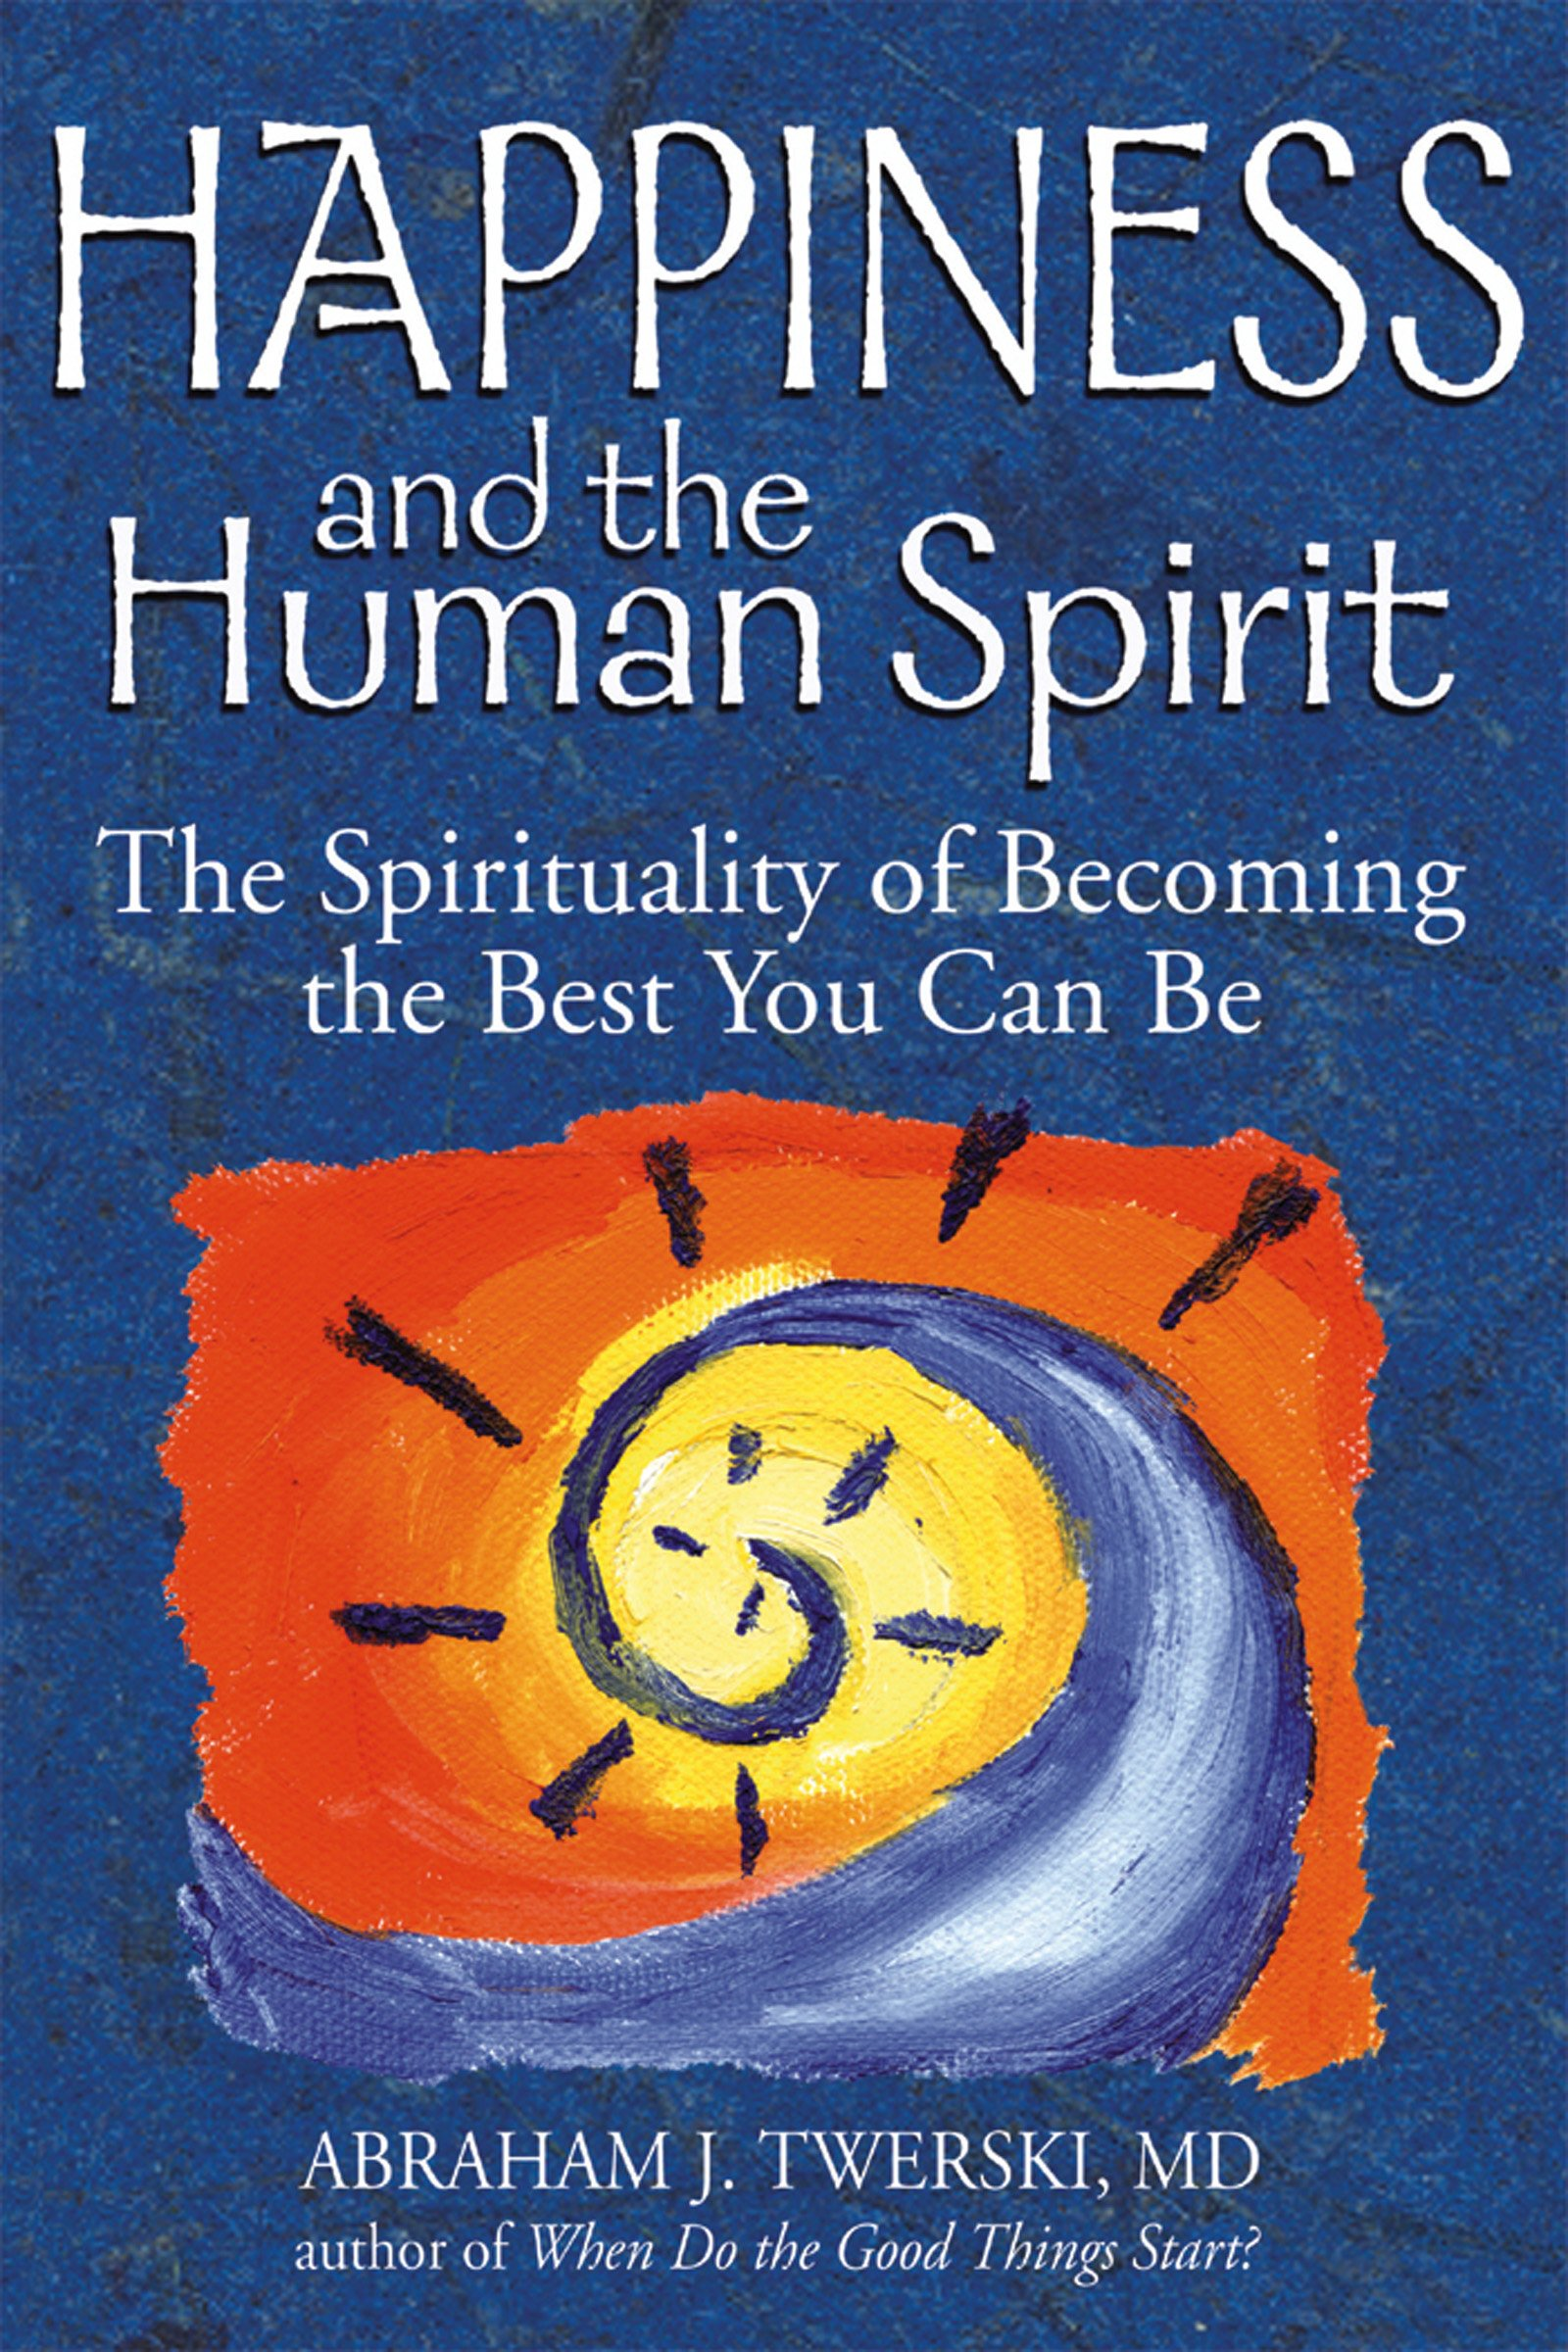 Happiness and the human spirit the spirituality of becoming the best you can be rabbi abraham j twerski md 9781580234047 amazon com books